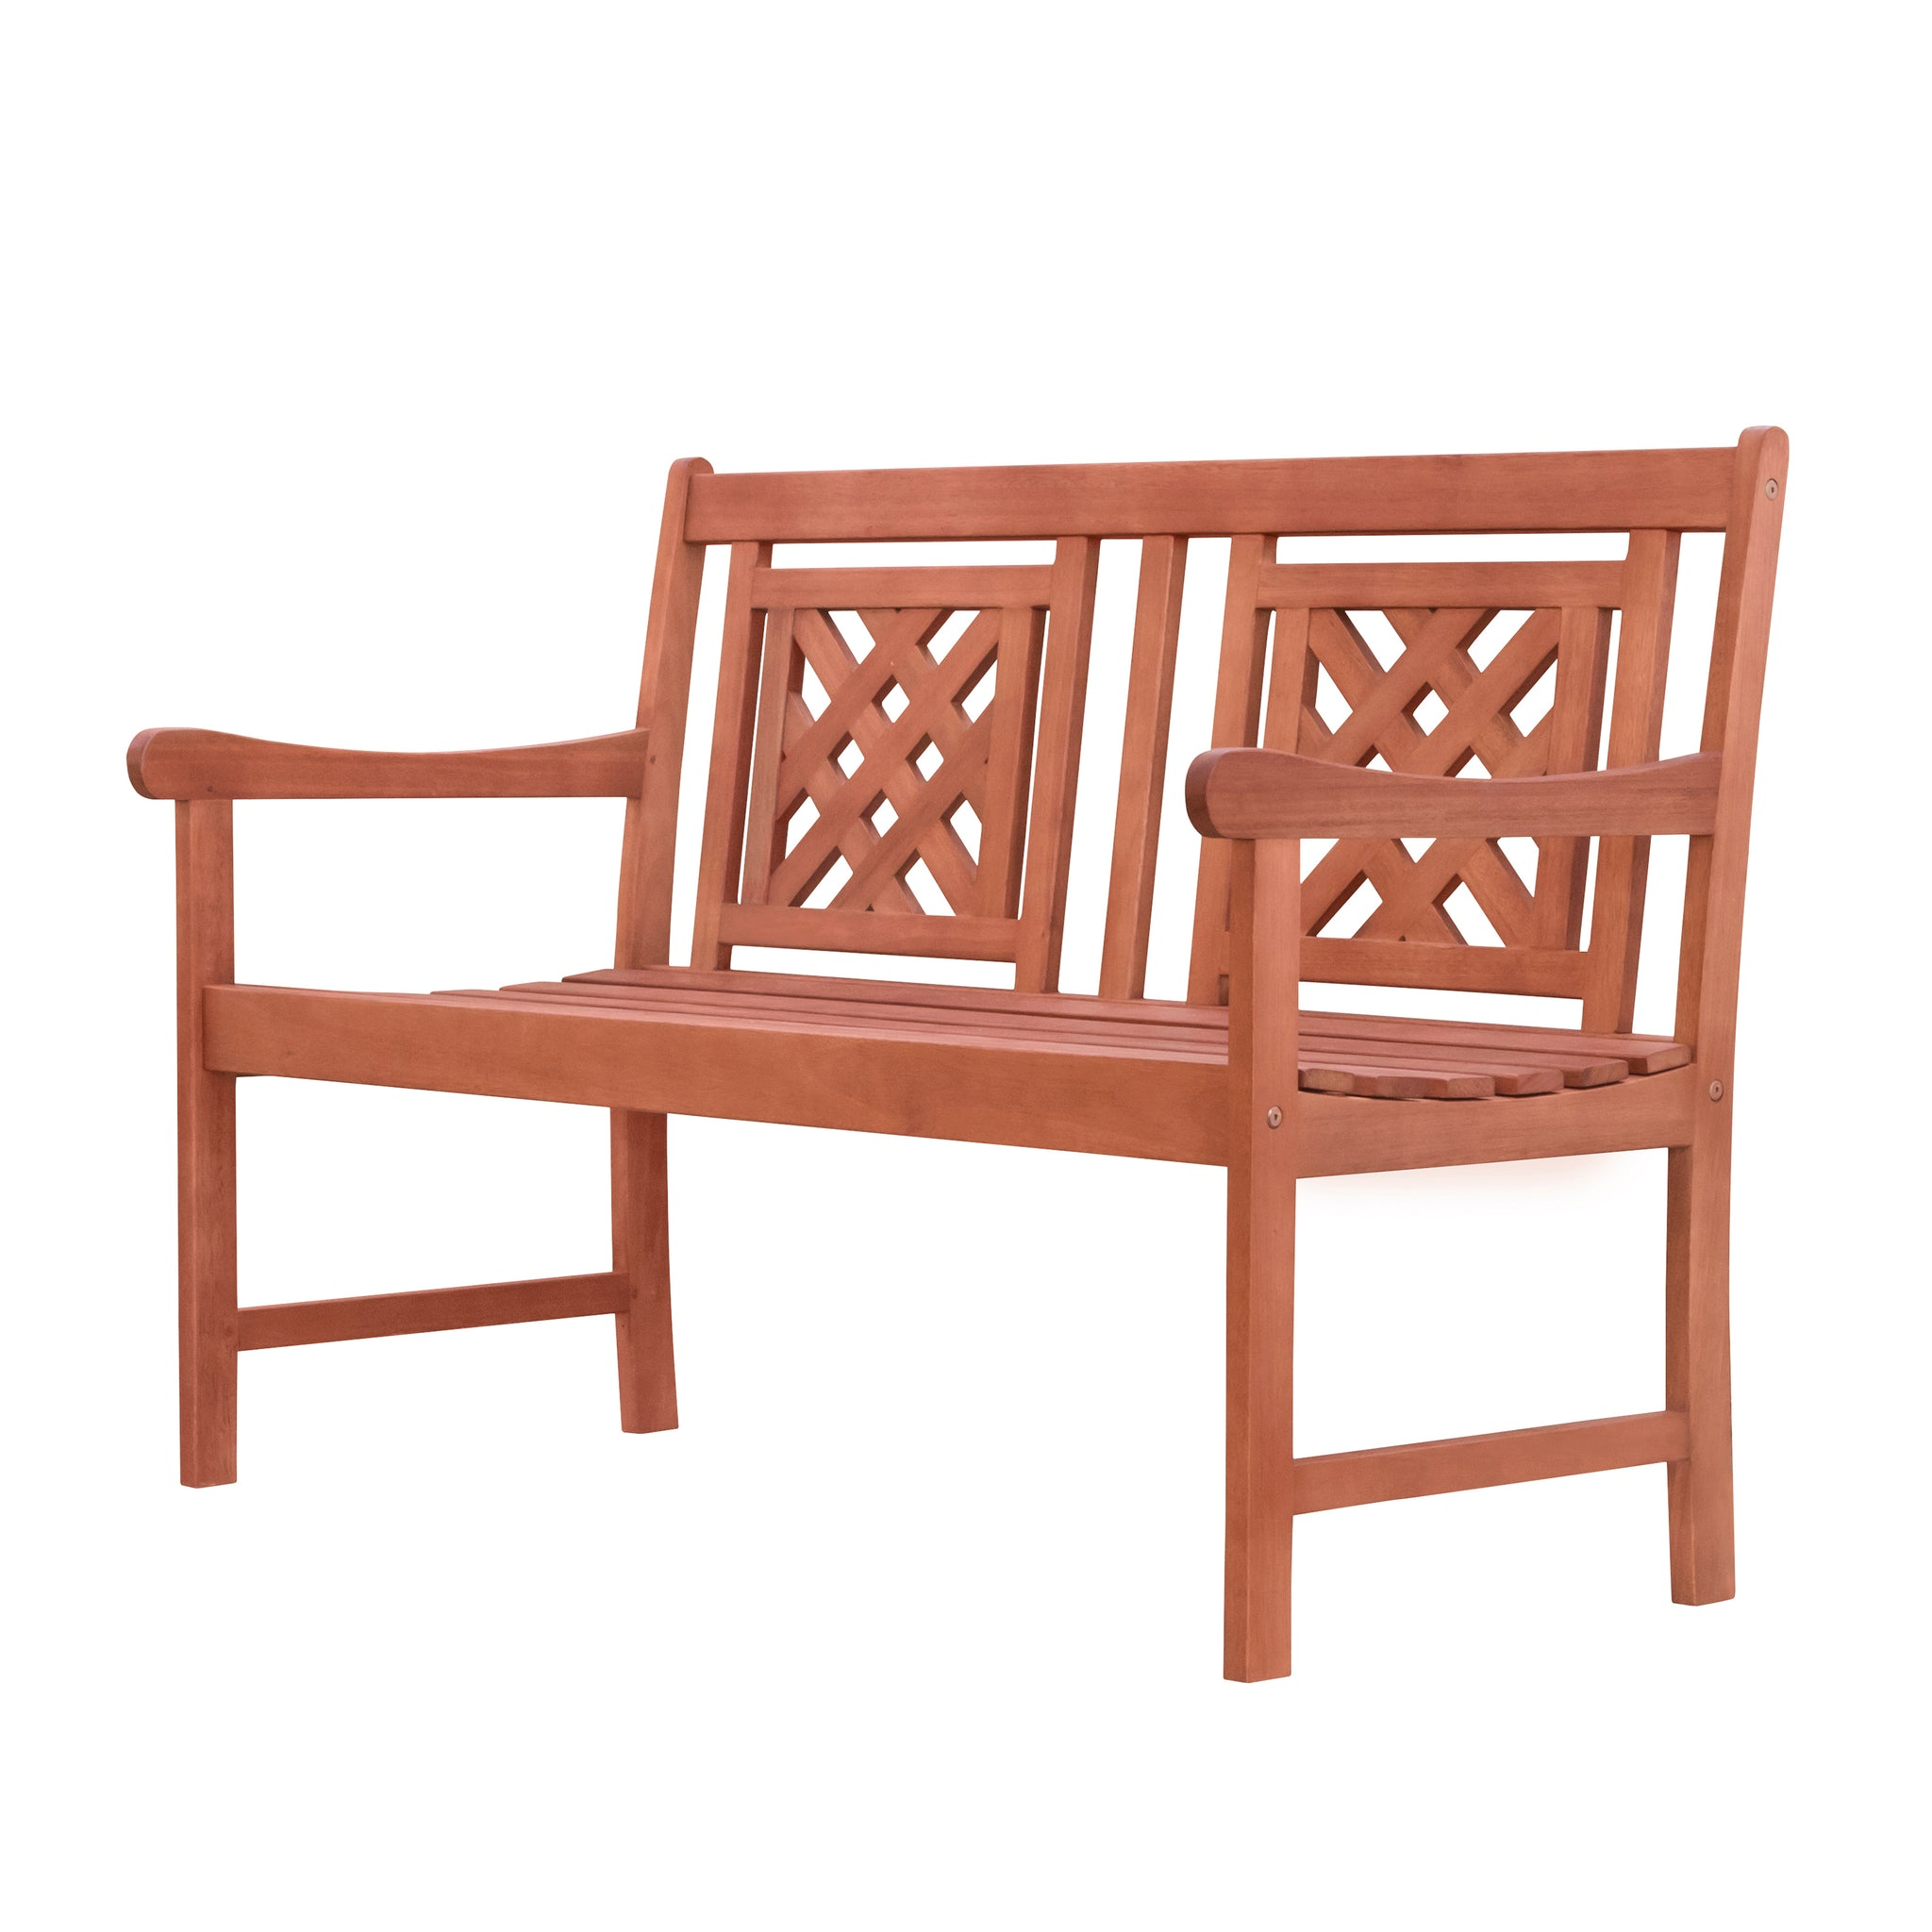 Outdoor Patio Plaid 4-foot Eucalyptus Hardwood Bench